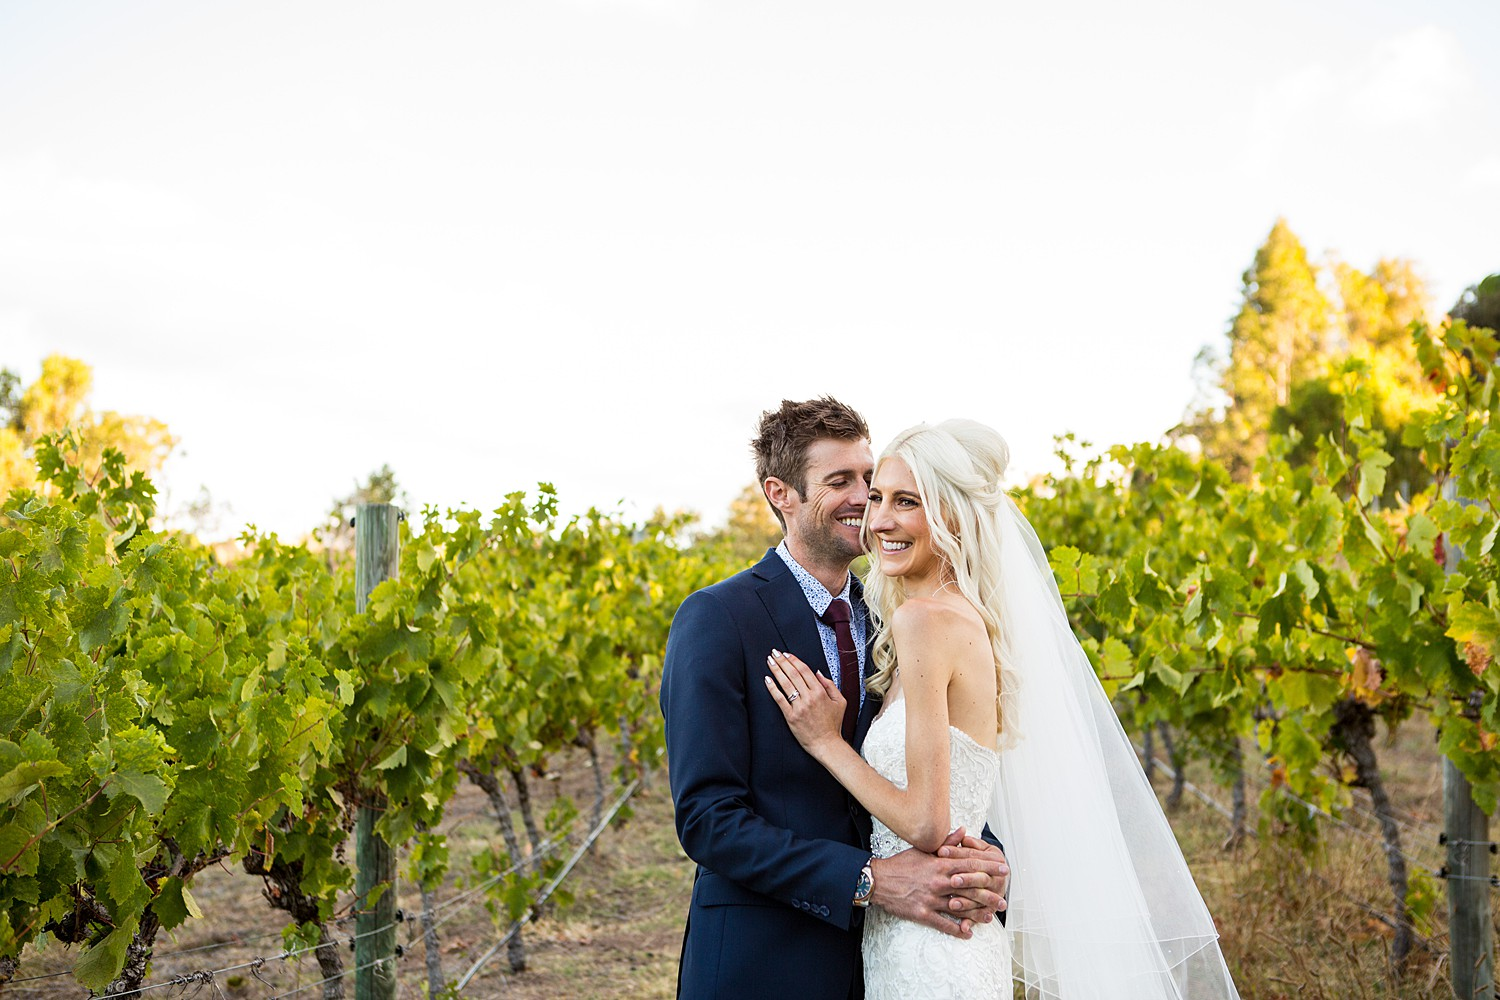 wise_wines_southwest_WA_wedding_0095.jpg